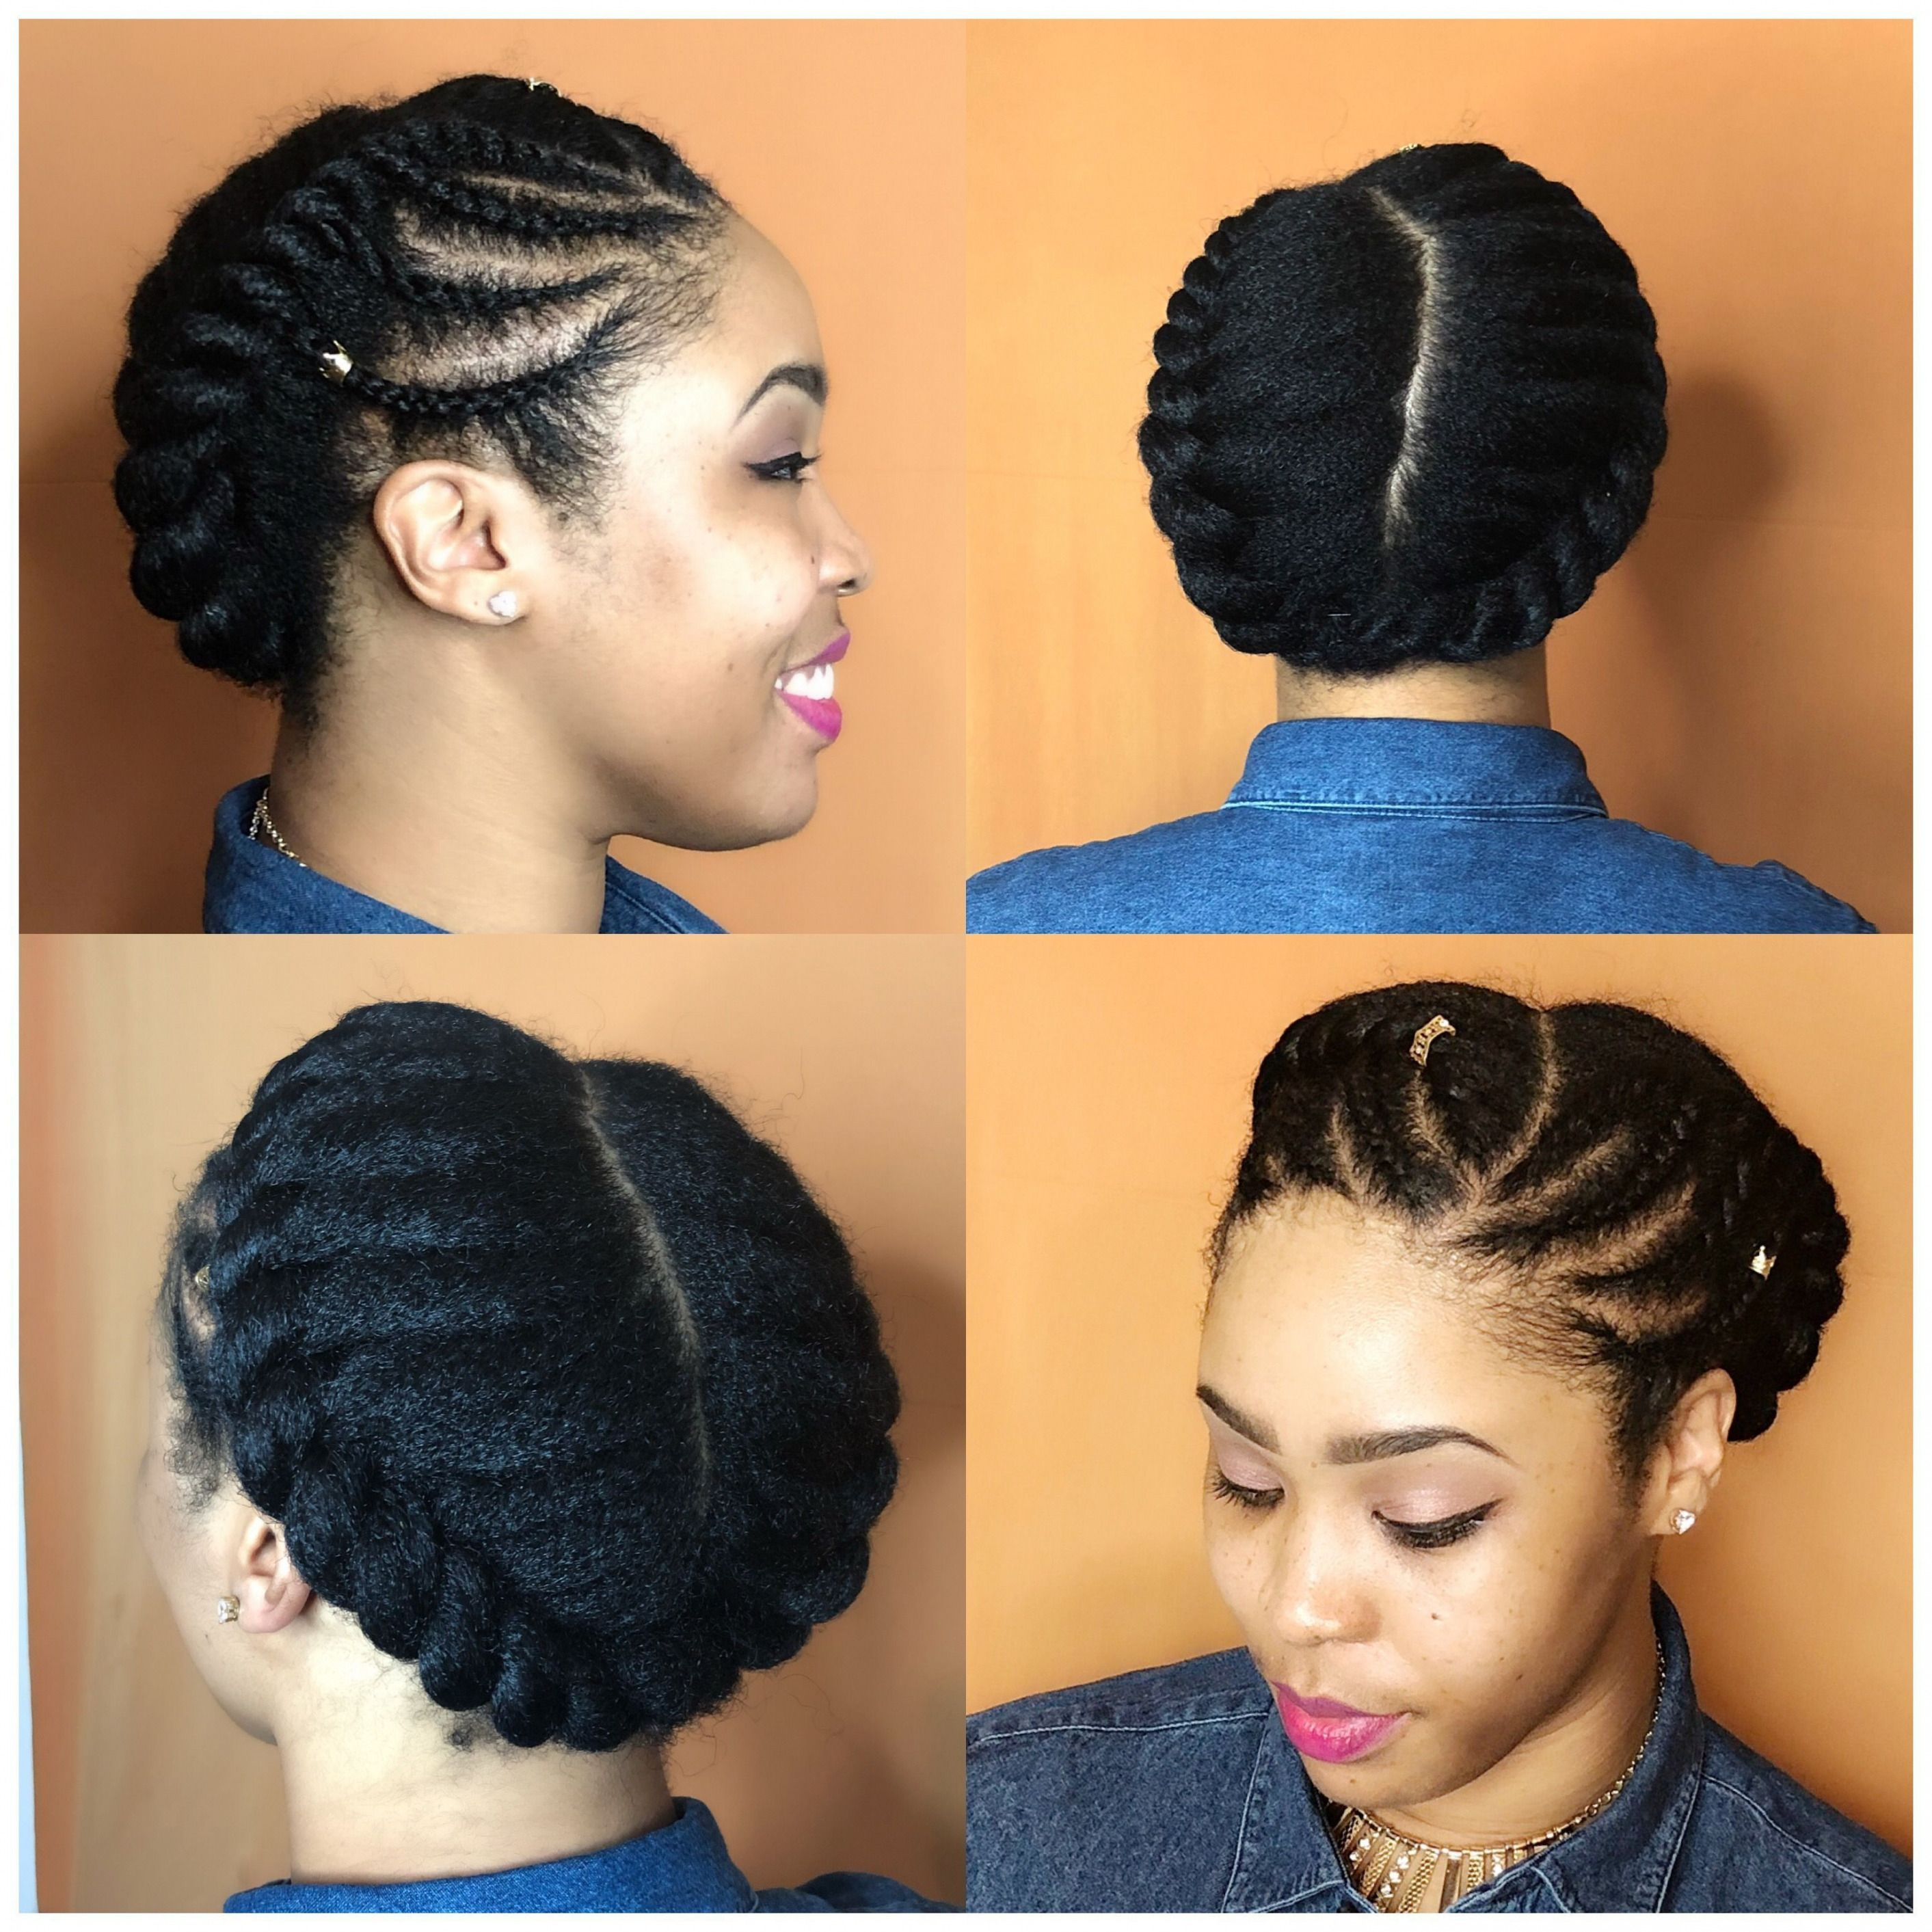 Pin By Sahrah Yashaahla On Twists Natural Hair Twists Natural Hair Styles Short Natural Hair Styles